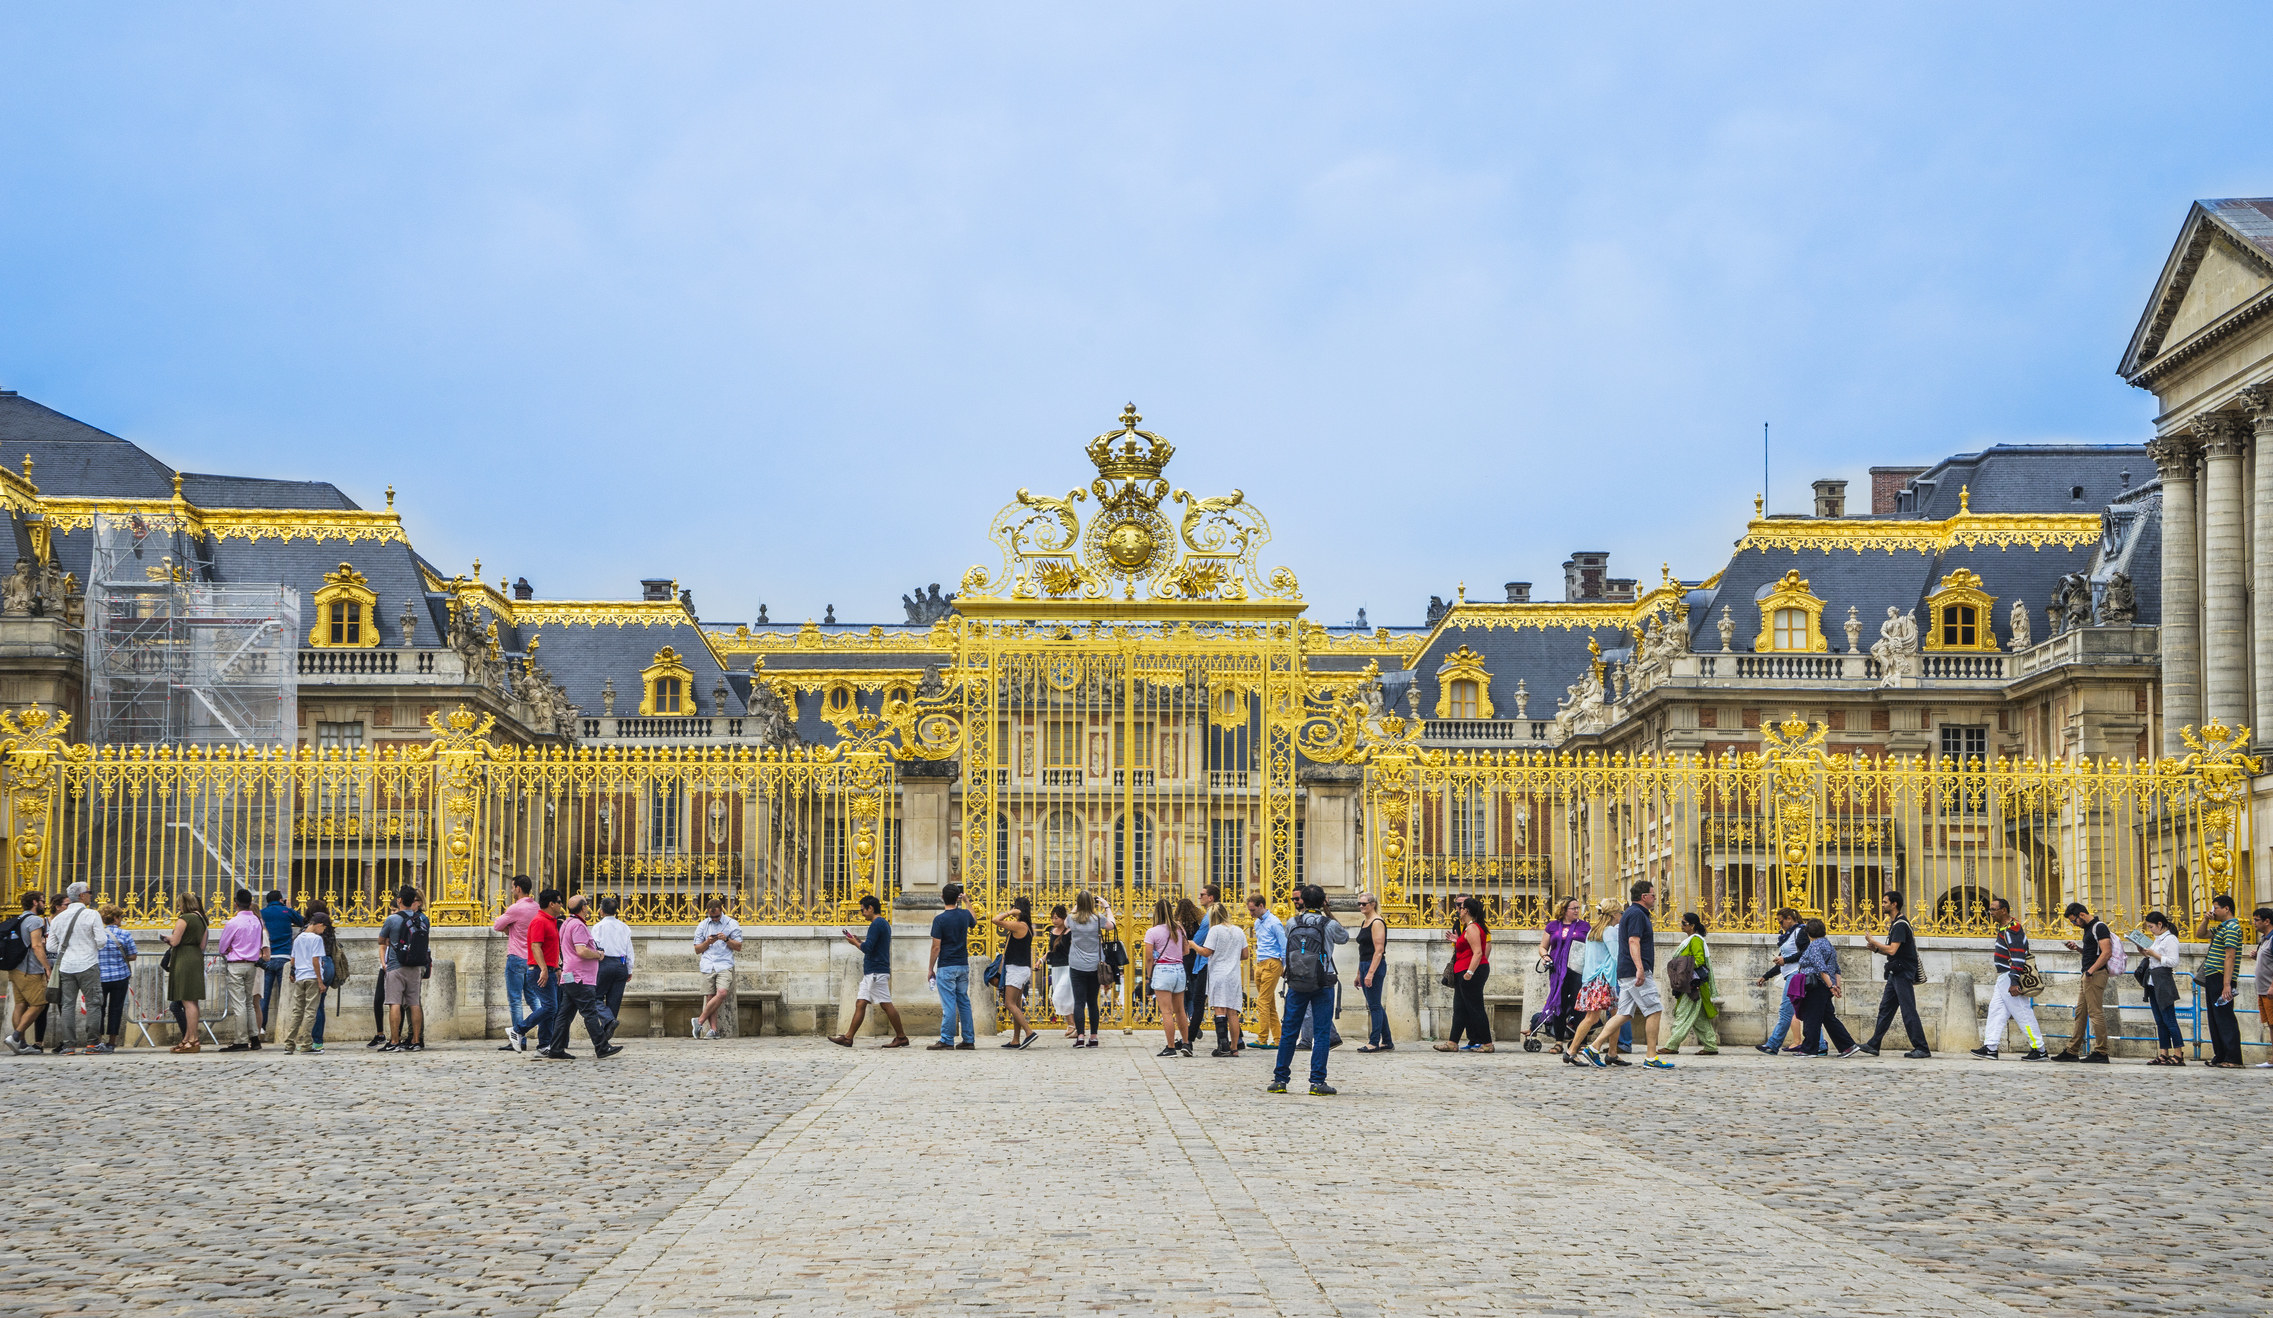 Tourists waiting in line at Versailles.